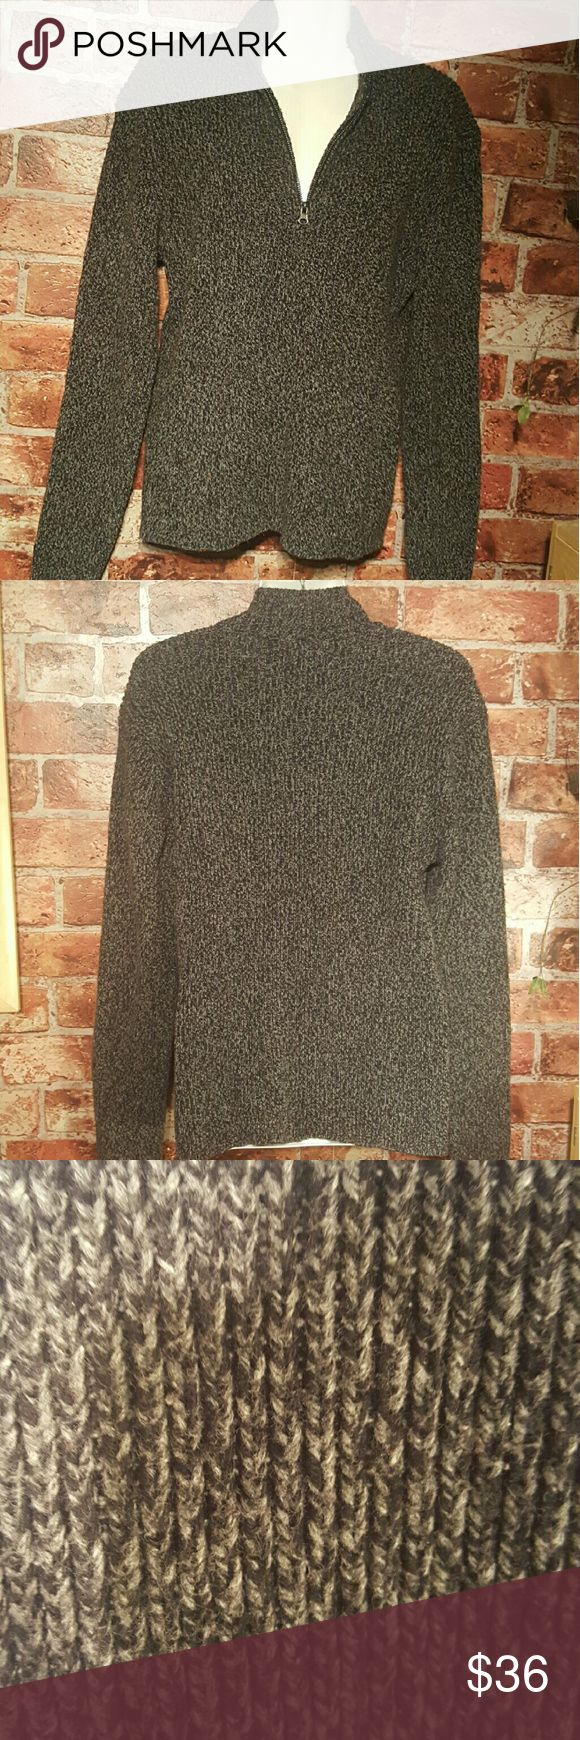 NWOT CONVERSE charcoal sweater for women Warm and cozy sweater for women. Never worn. Make an offer ladies. Converse Sweaters